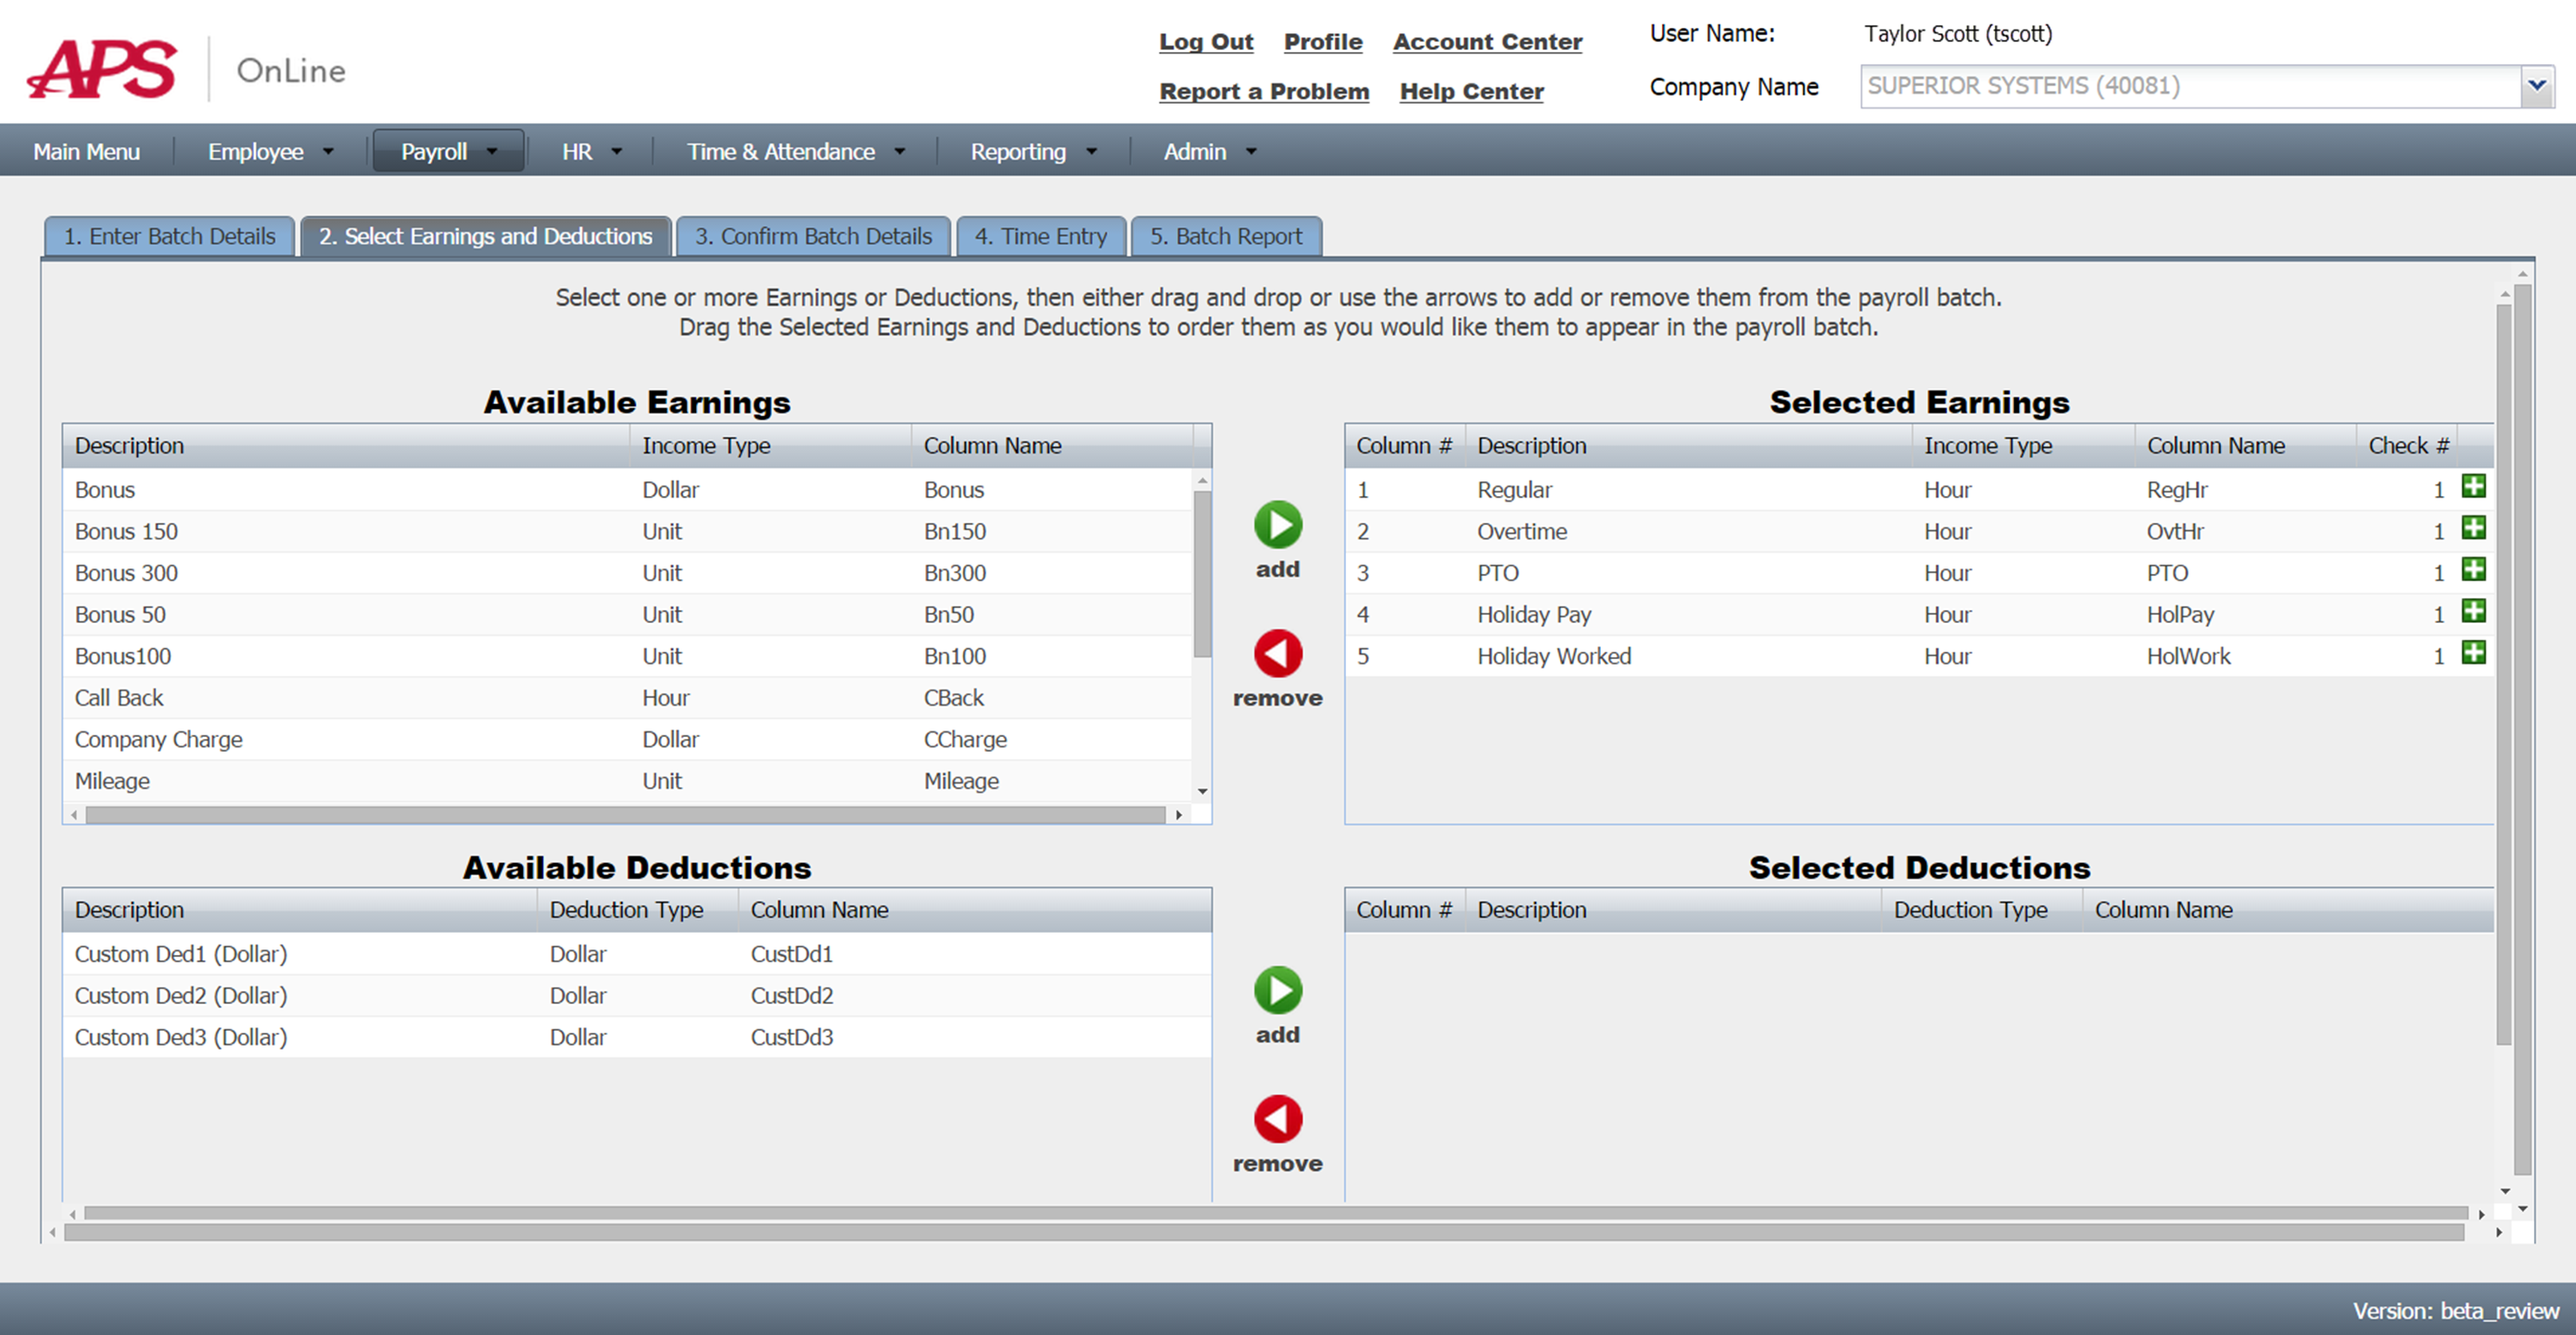 Screenshot: Earnings and Deduction Selection in Payroll Batch